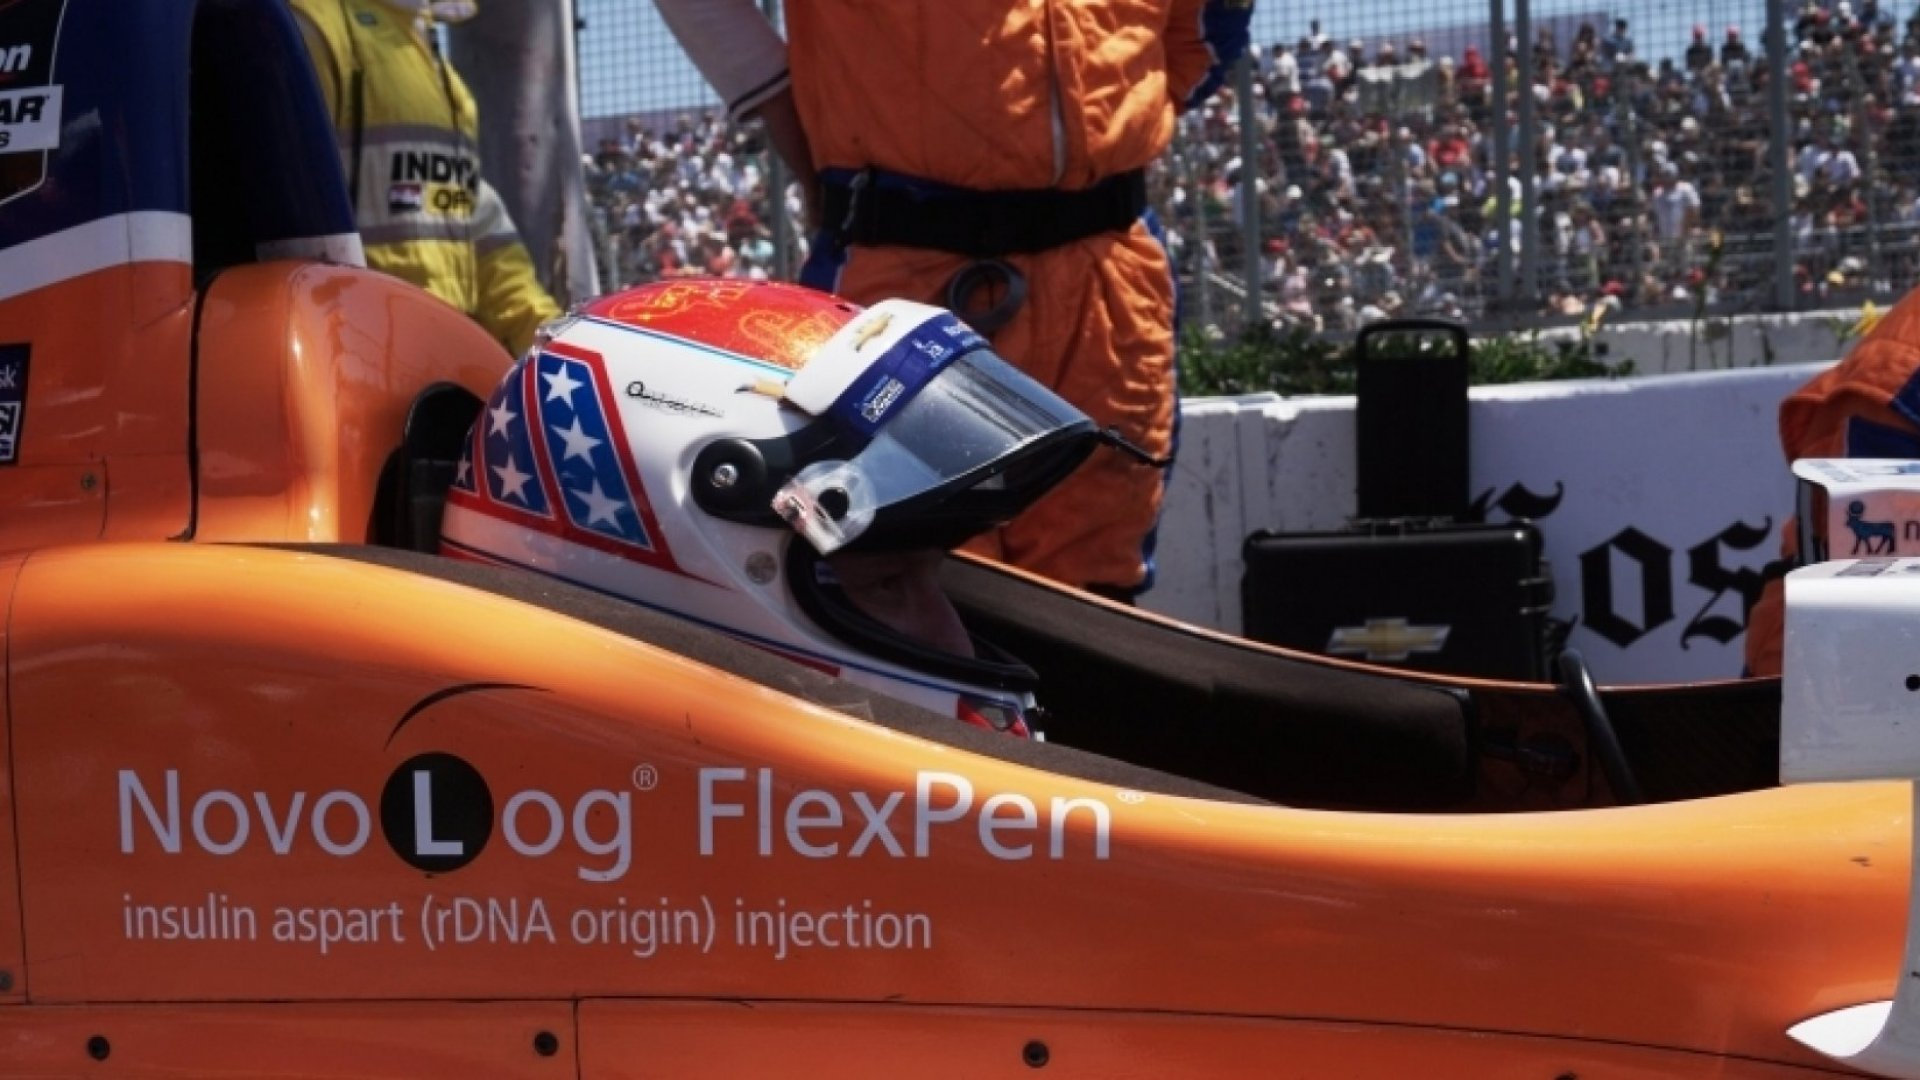 Why a Diabetic Indianapolis 500 Driver Is the Perfect Pitchman